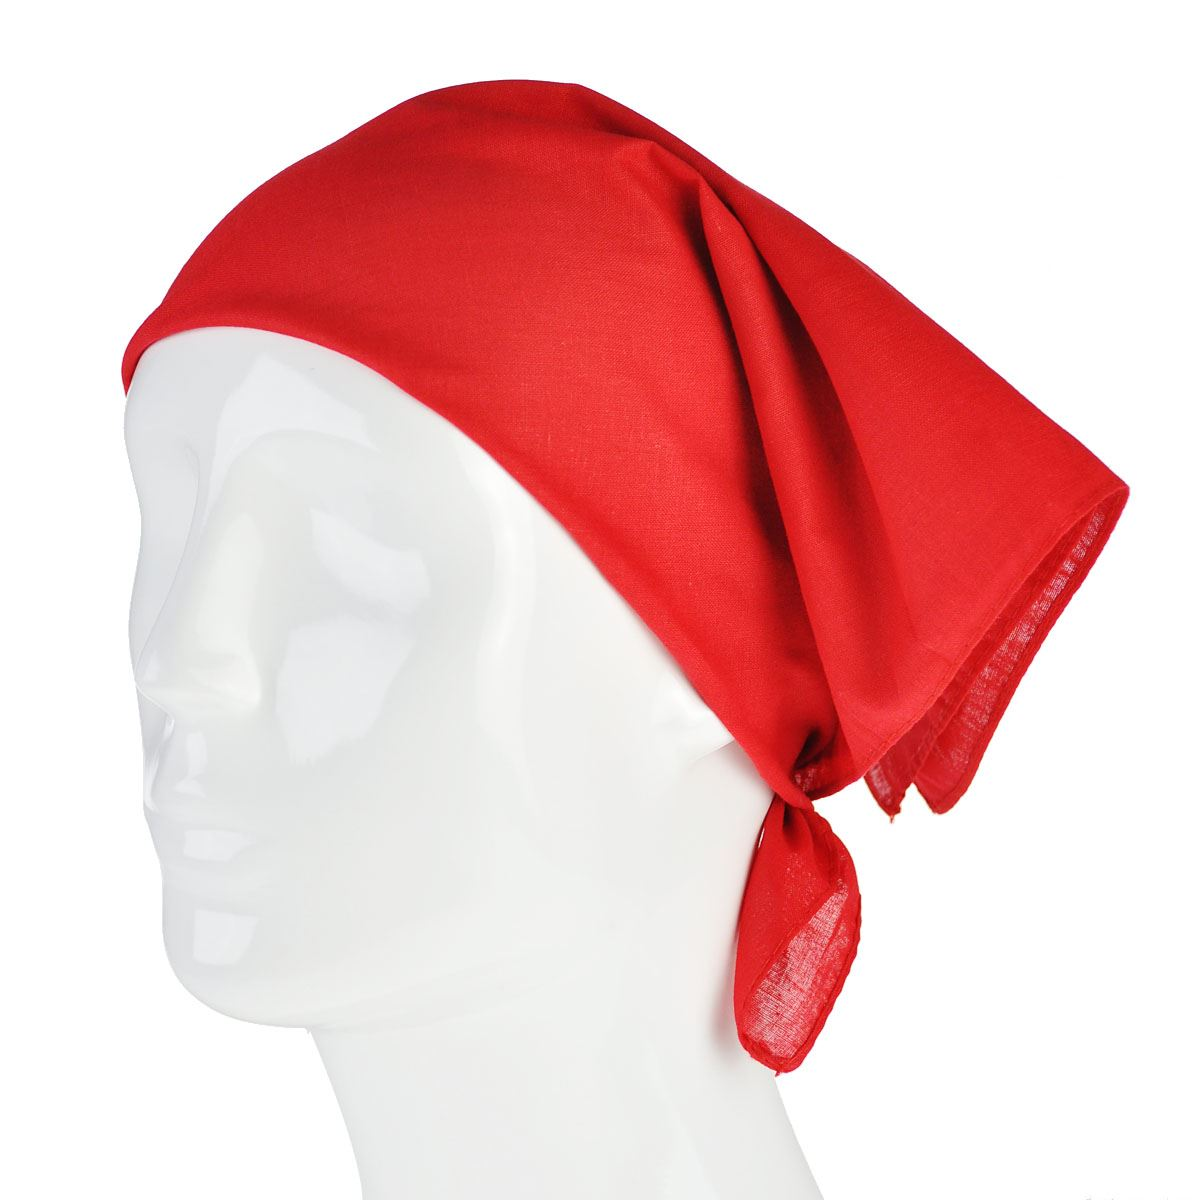 Plain Bandana Headscarf Neck Scarves Wrist Wrap Head Band